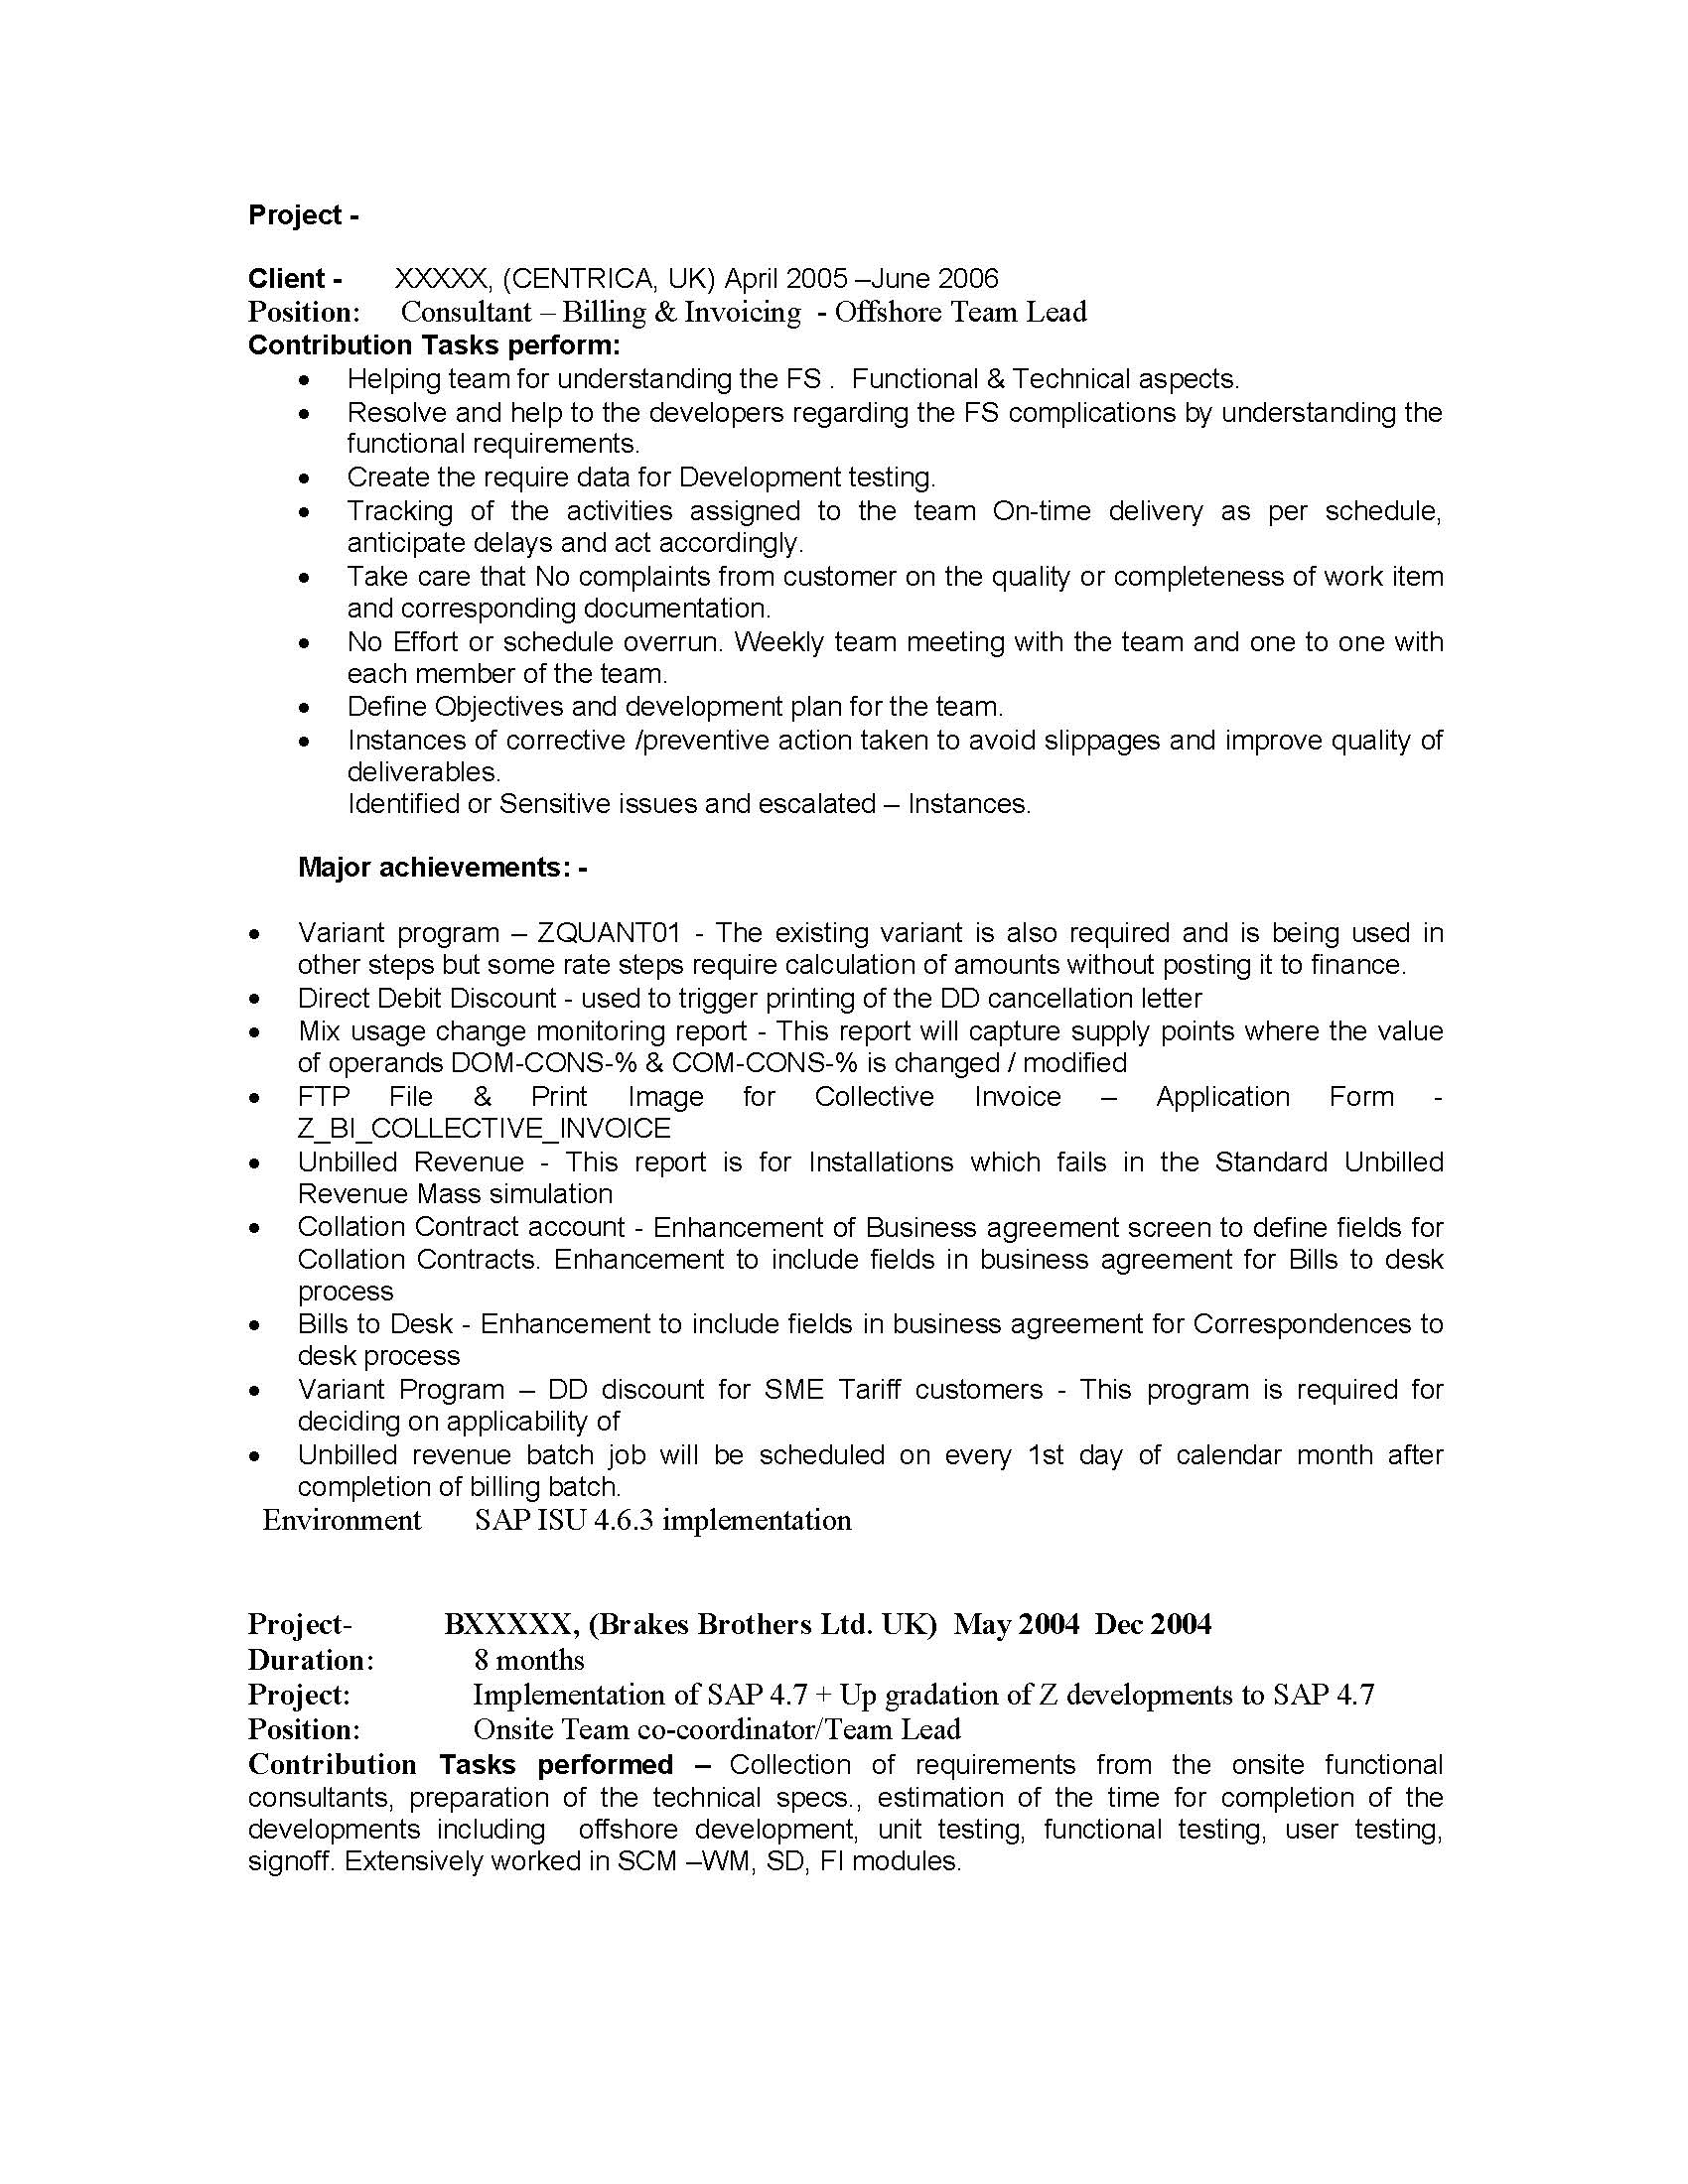 SAP IS (Industry Solutions) Sample Resume 14.00 years experience